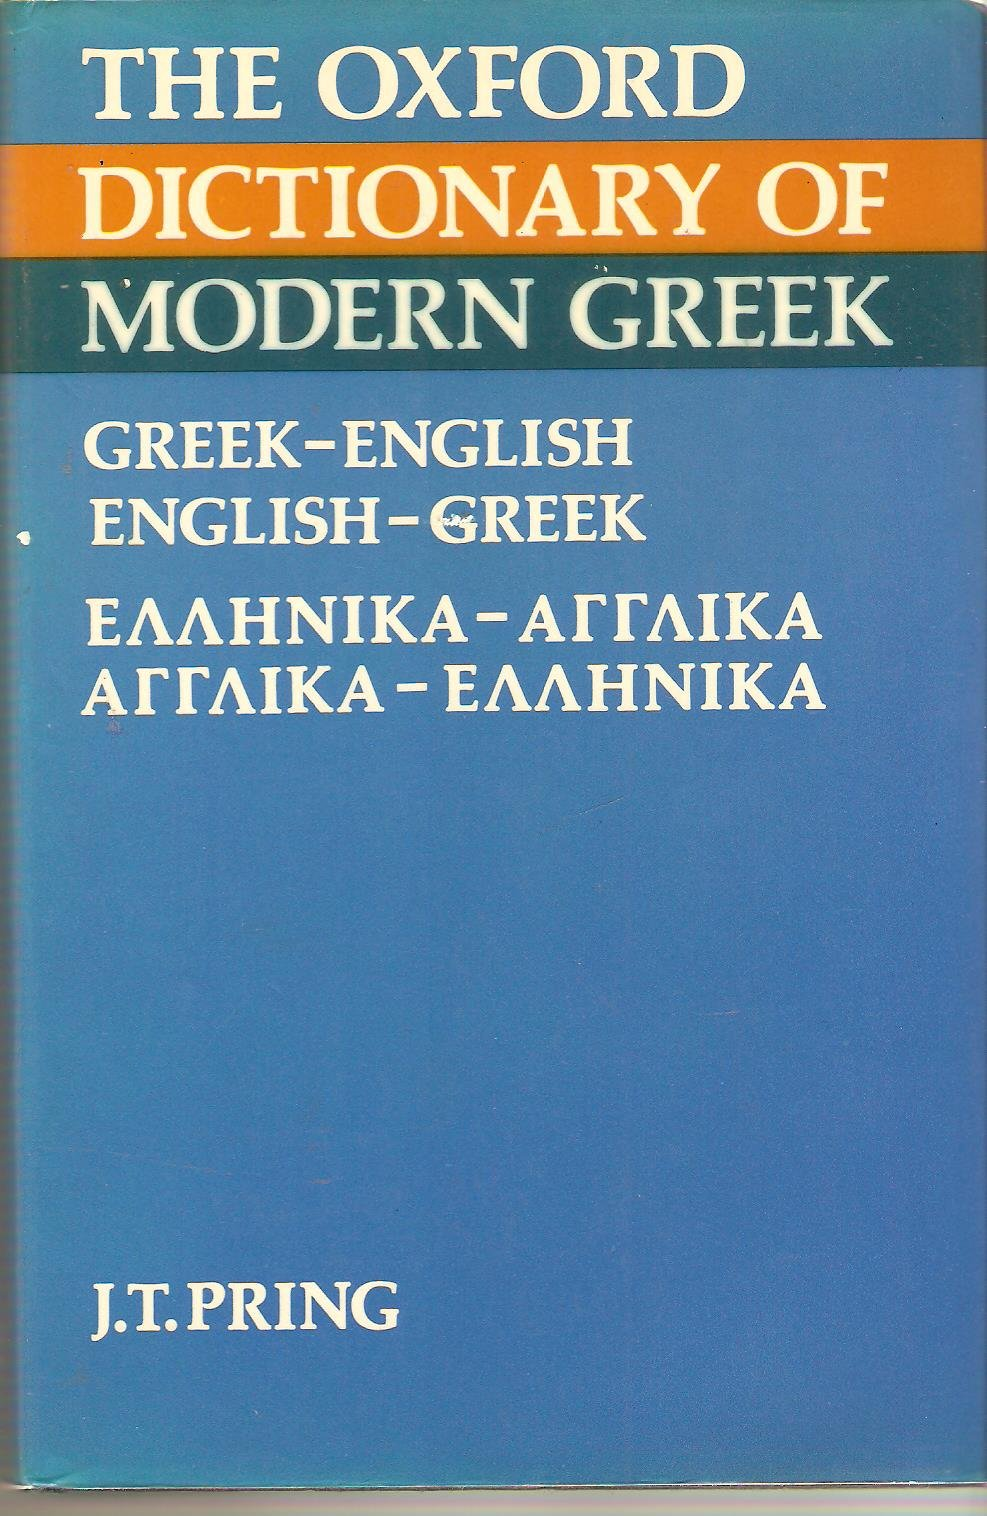 The Oxford Dictionary of Modern Greek: Greek-English/English